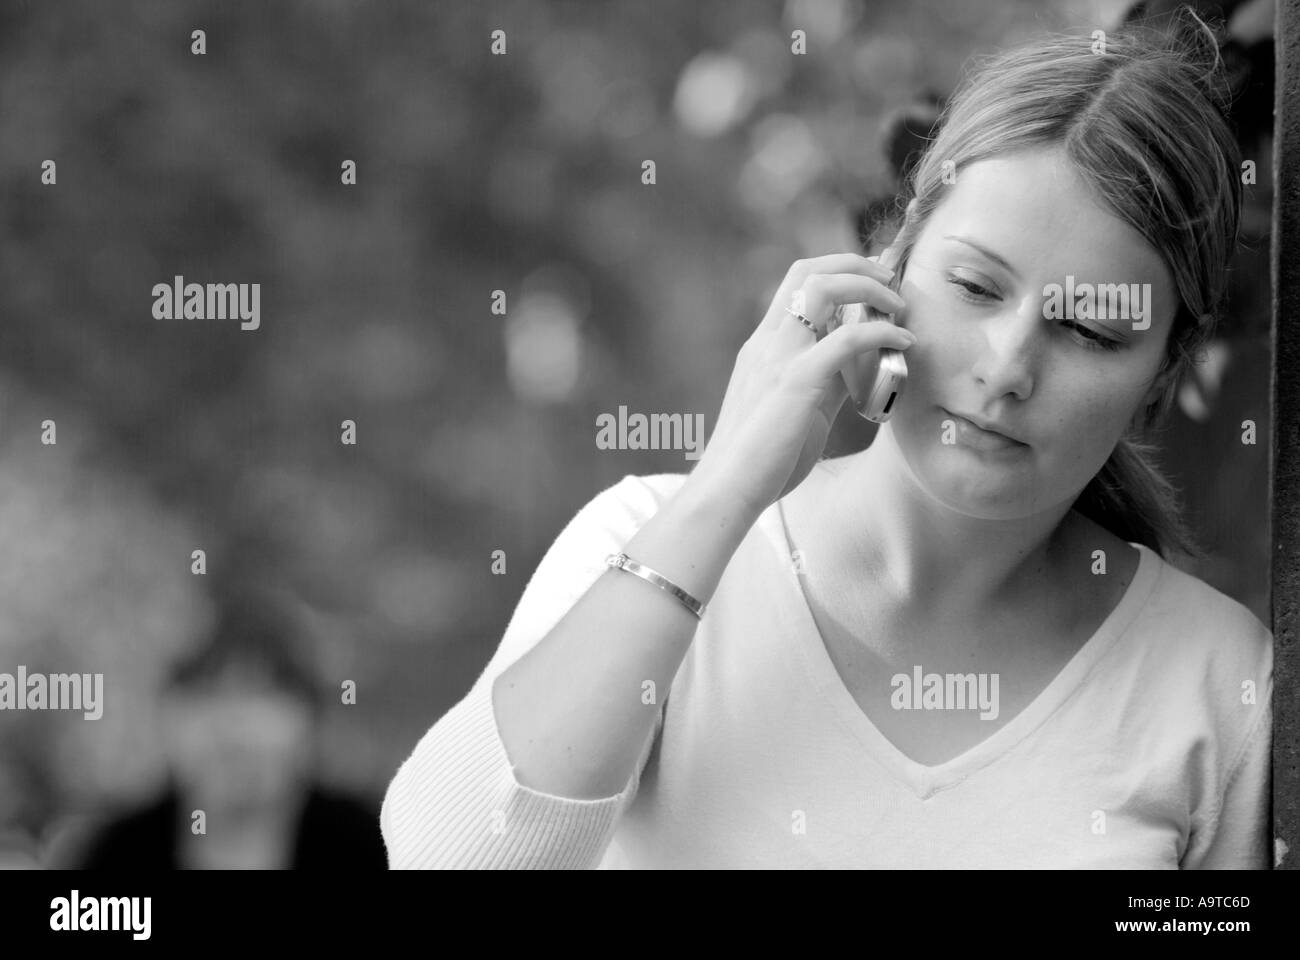 teenage girl on mobile phone student teen speak talk text txt coms communication telecoms telecommunication handset pay as you g - Stock Image